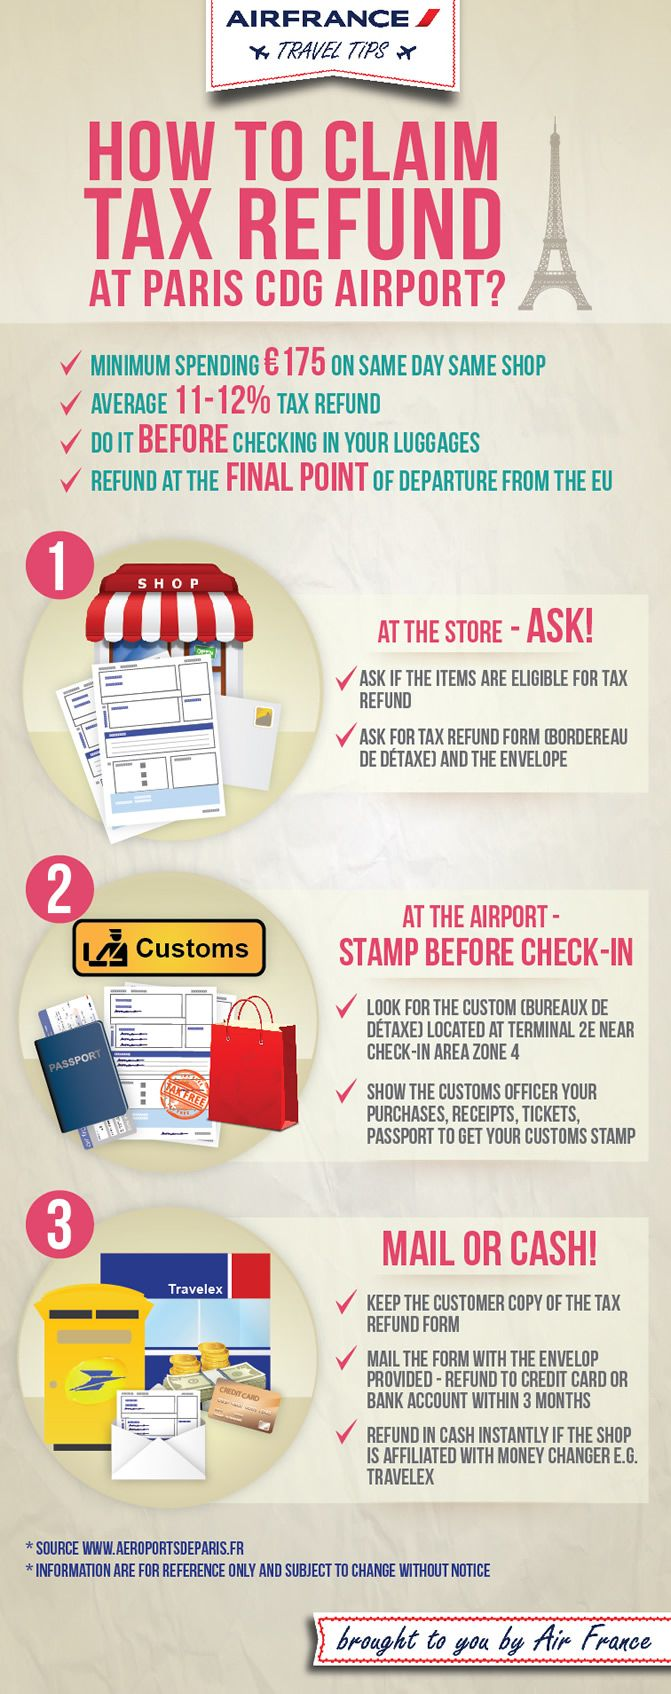 Tax Refund in #Paris CDG airport in 3 steps #Shopping #Sales